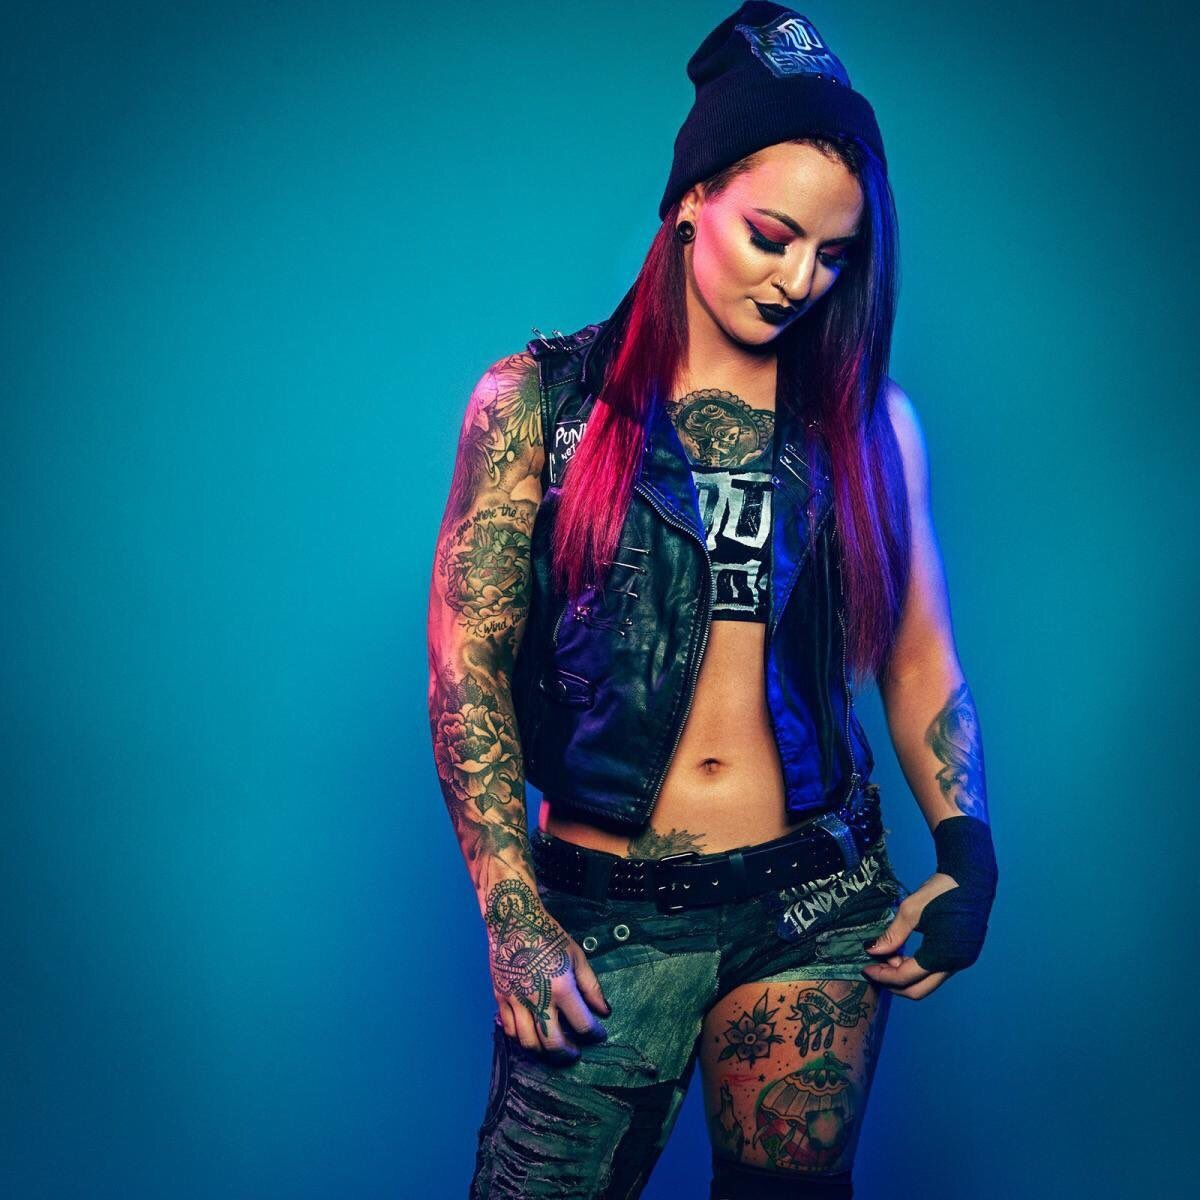 Ruby Riott | Wwe female wrestlers, Wwe girls, Female wrestlers